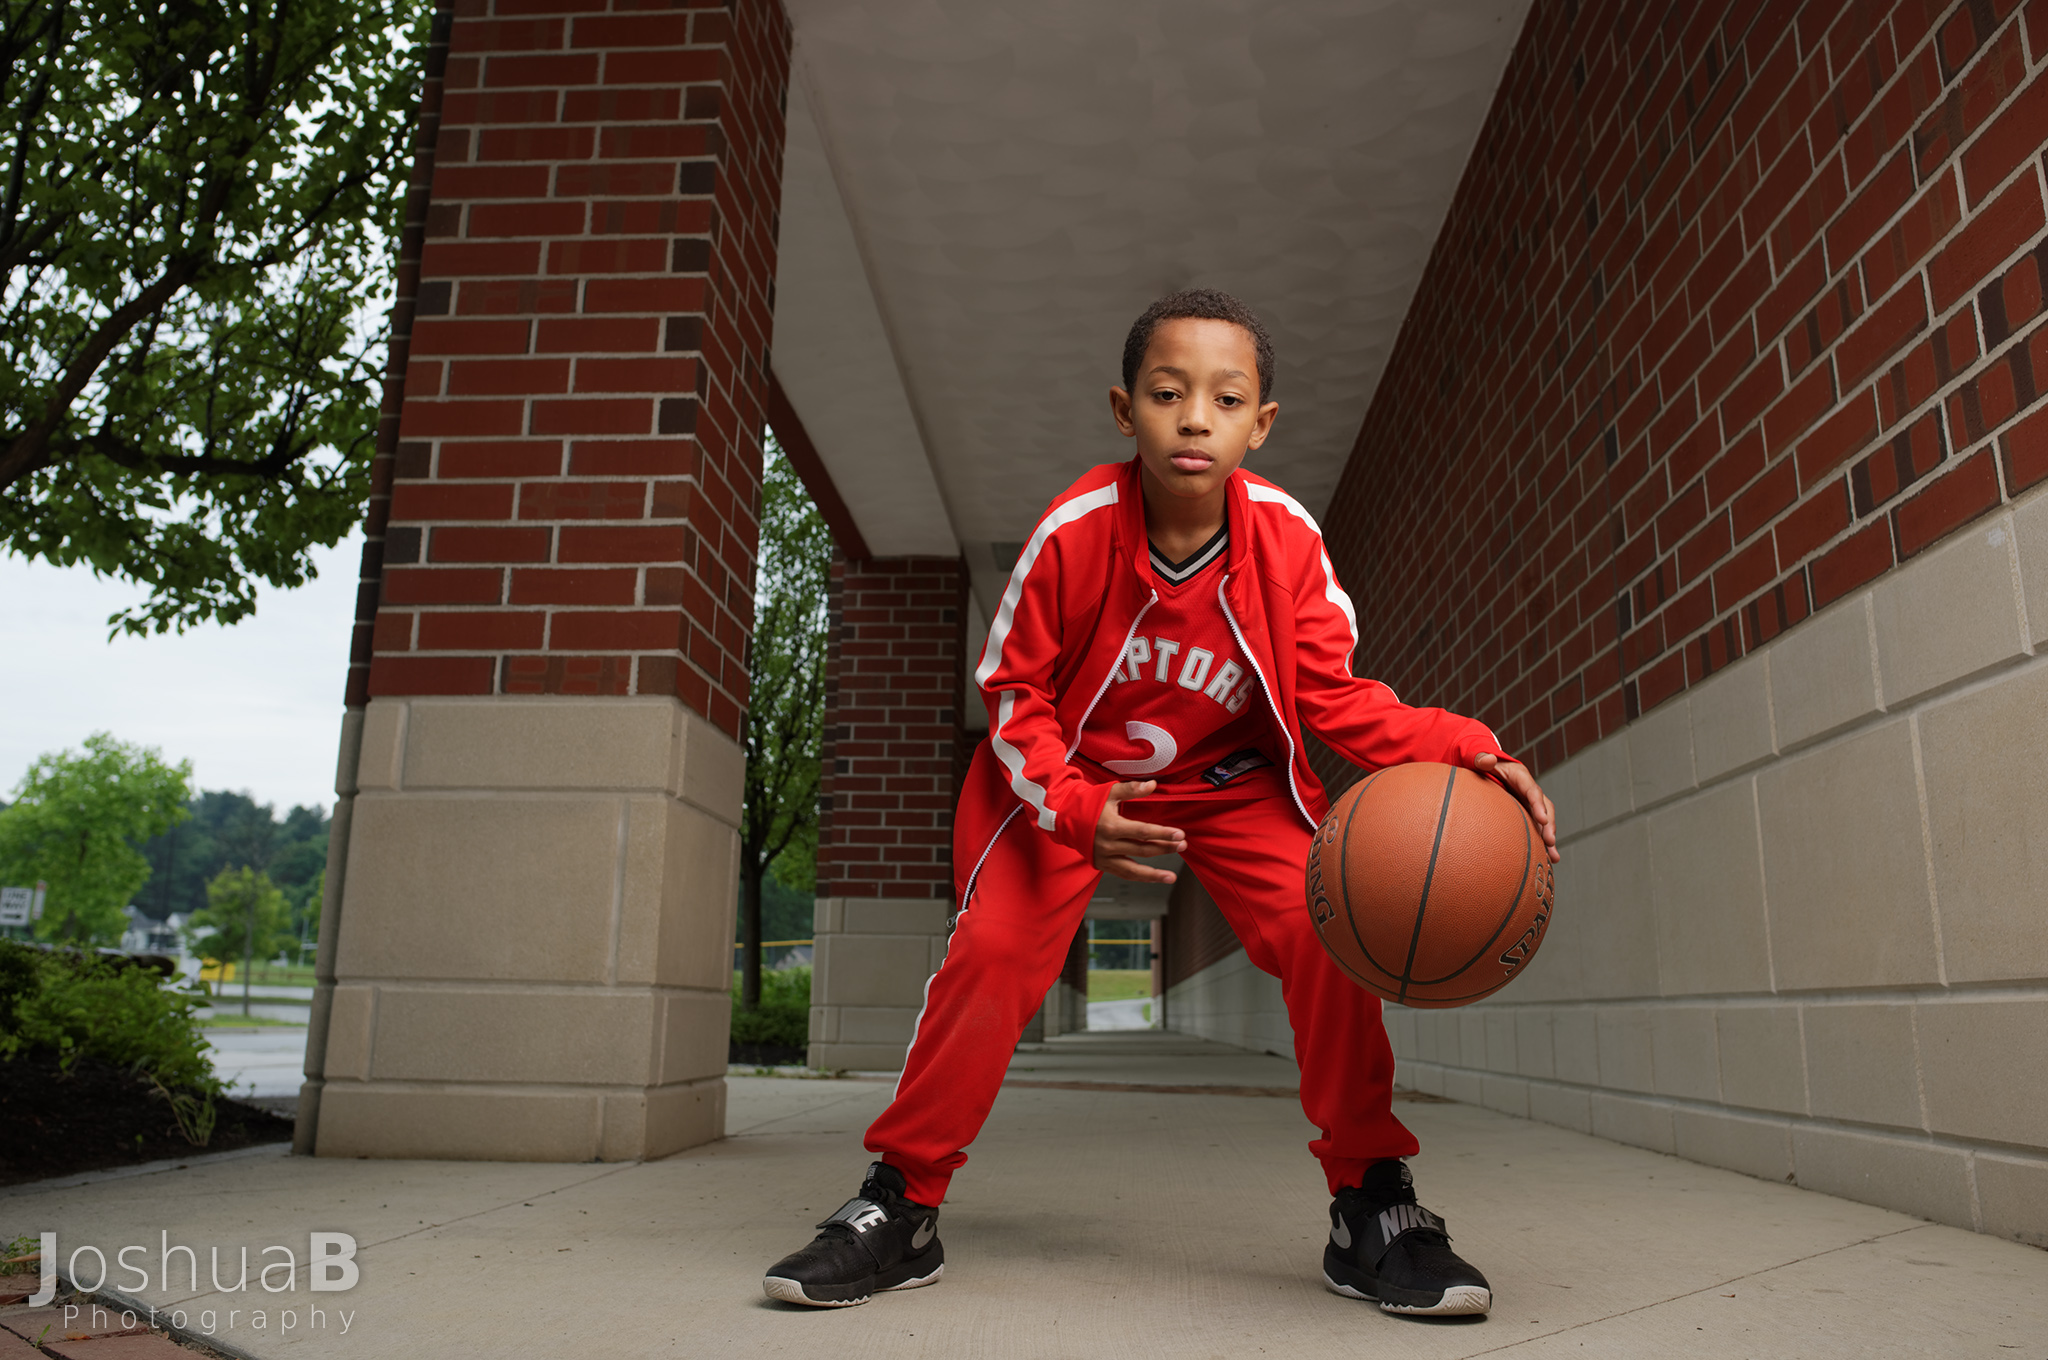 boy in red track suit and Kawhi Leonard jersey dribbling basketball at a school